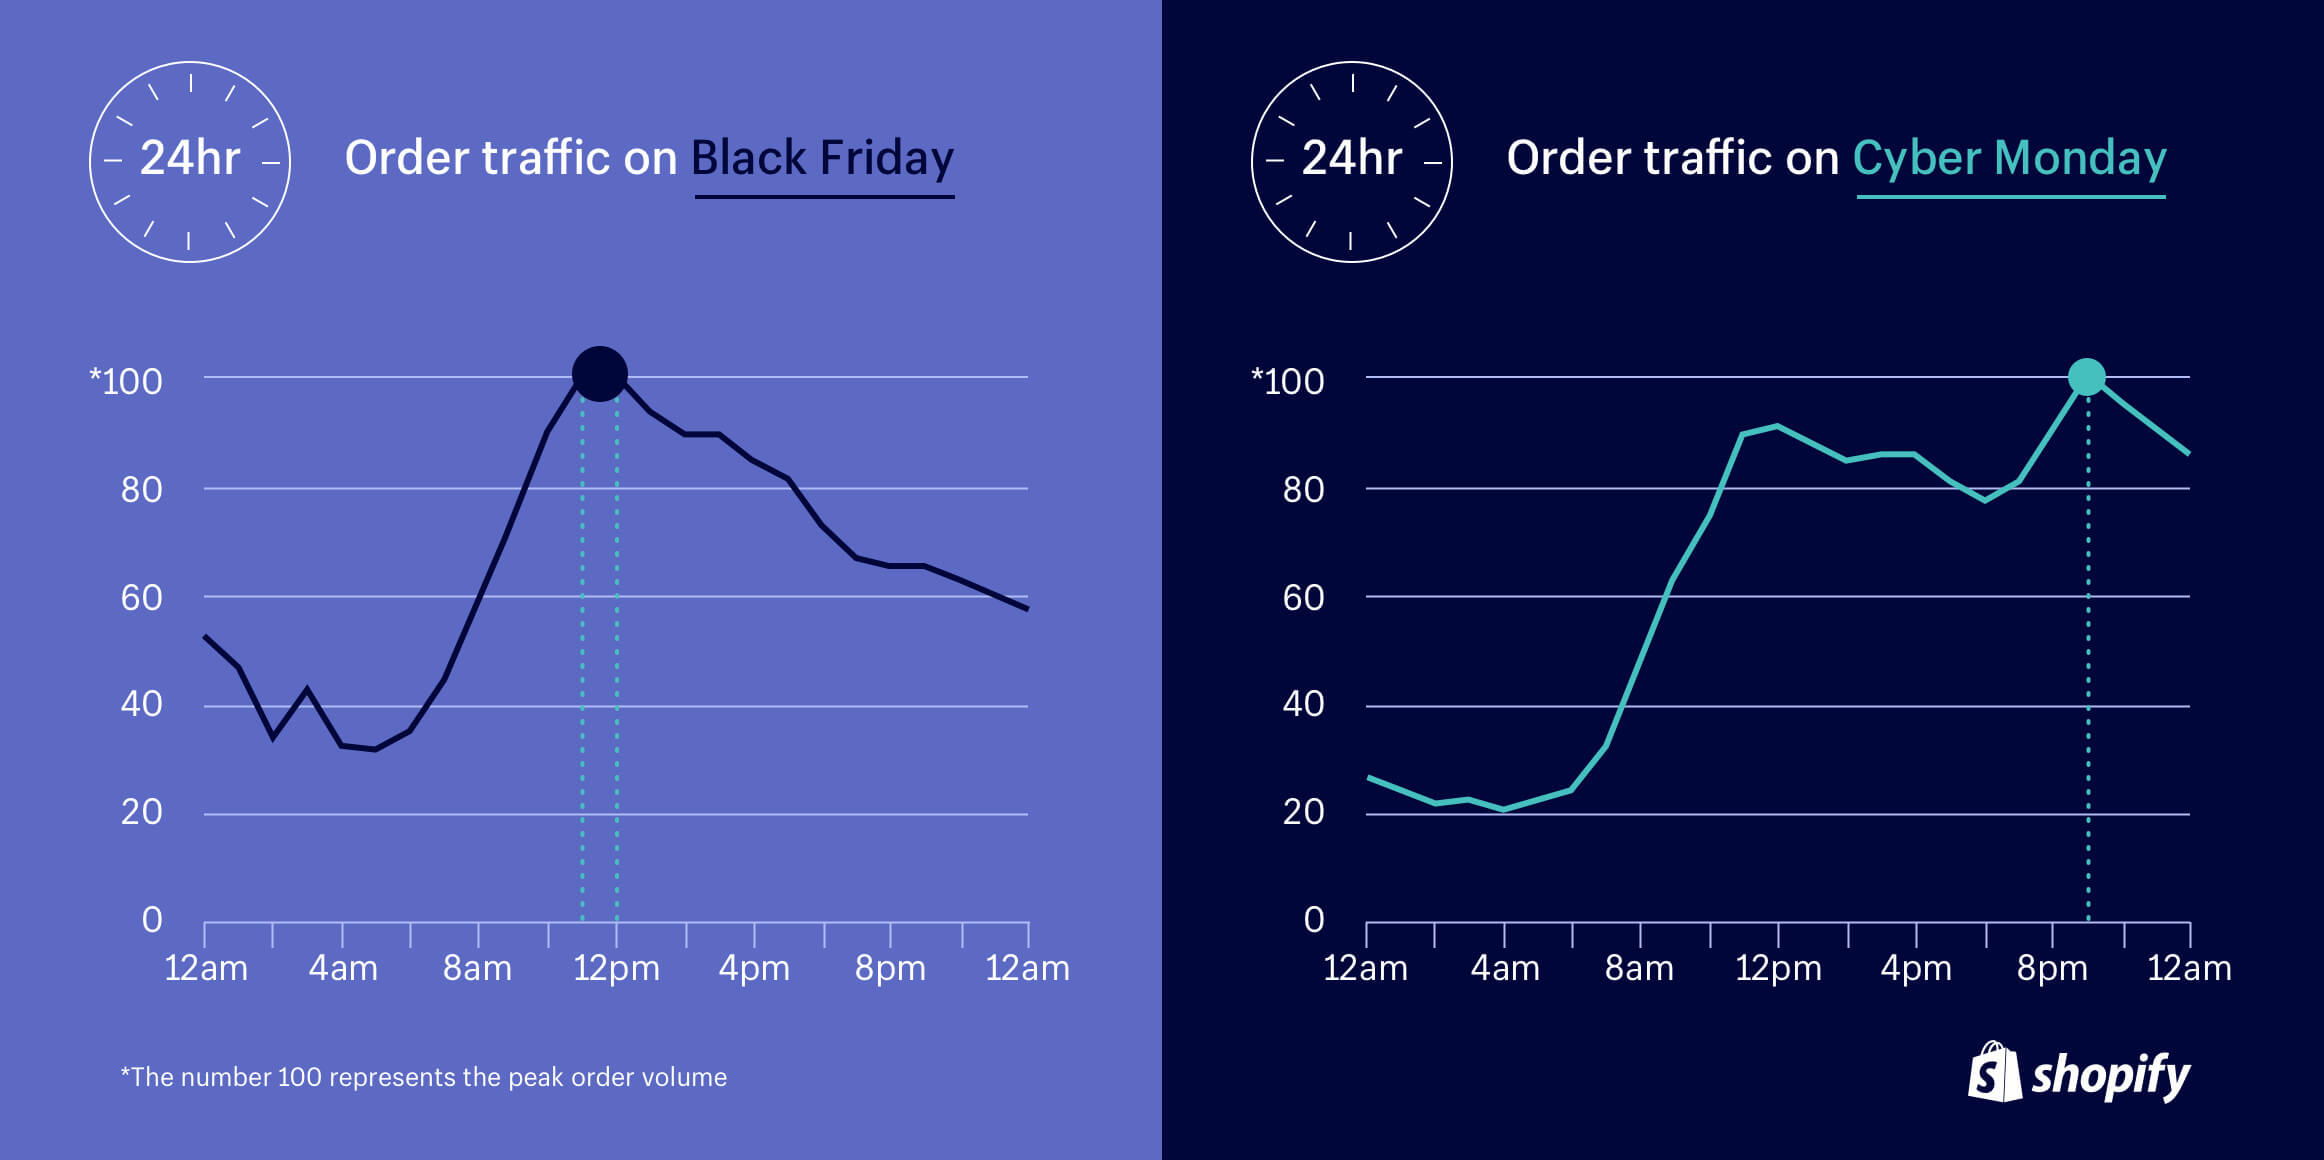 Online shoppers activate time on black friday and cyber monday